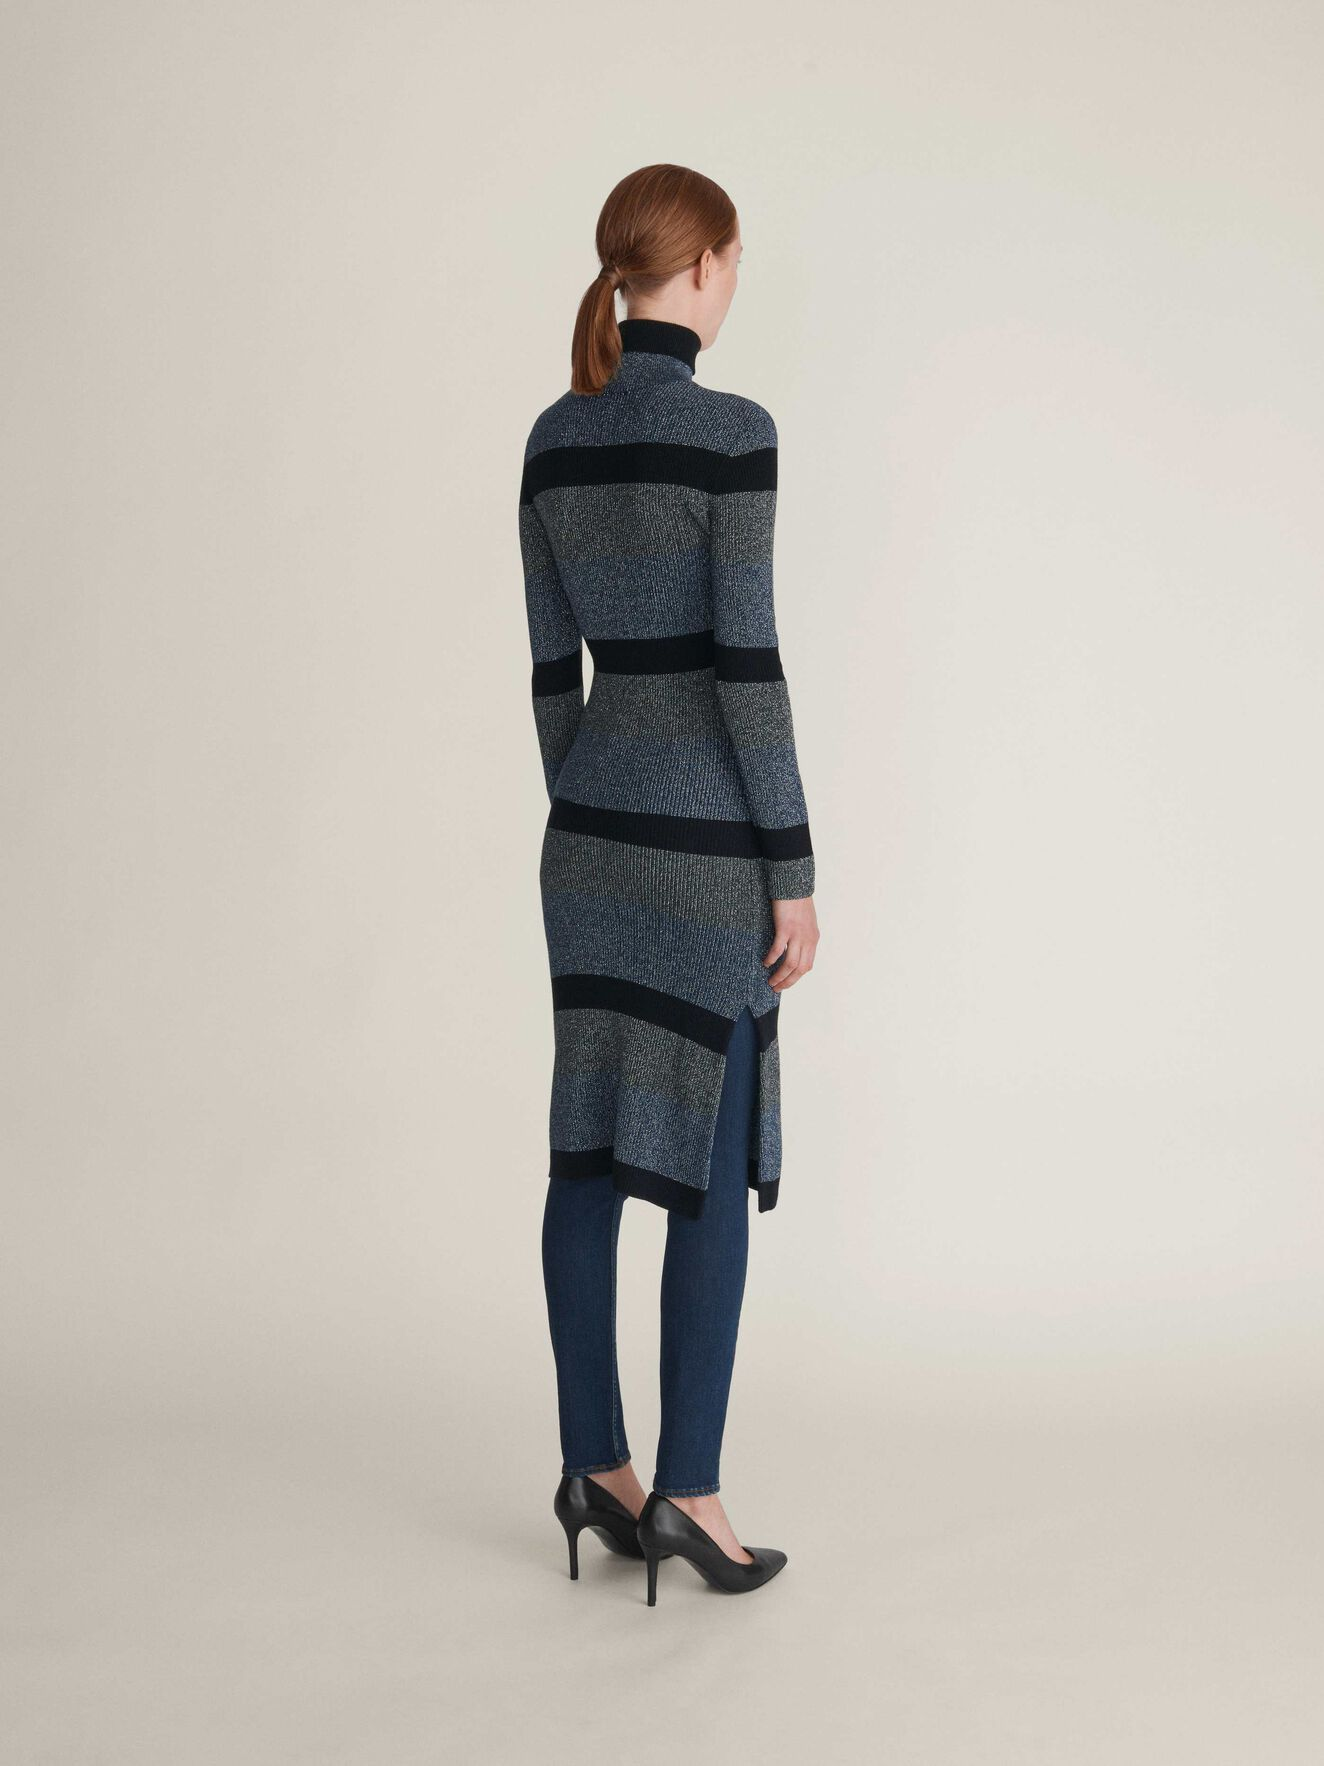 Badal St Dress in Pattern from Tiger of Sweden